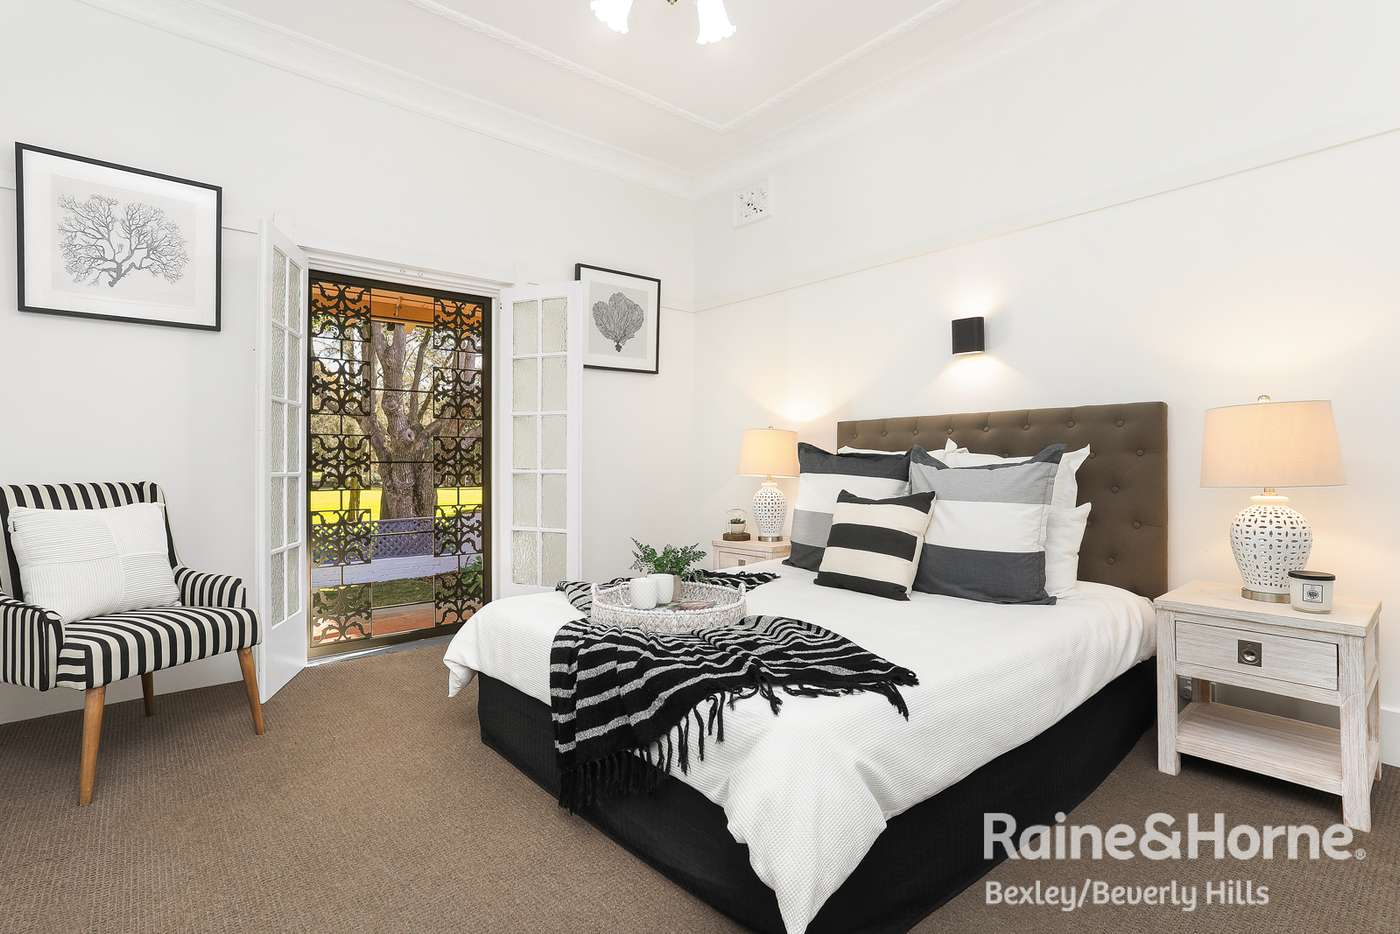 Fifth view of Homely house listing, 41 Highworth Avenue, Bexley NSW 2207